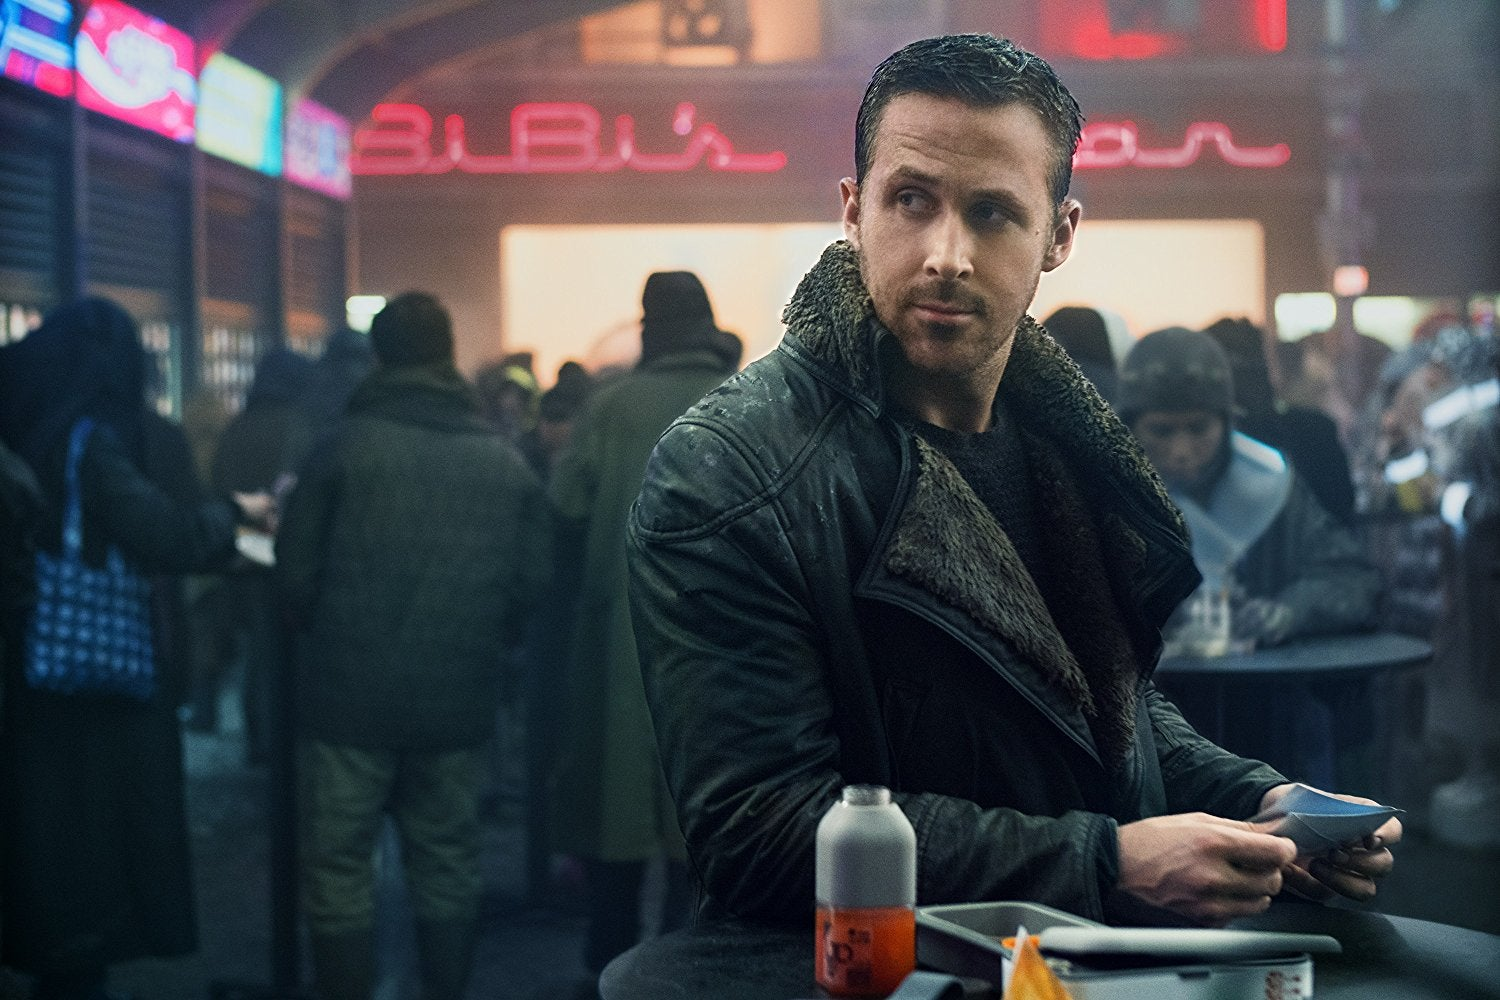 Ryan Gosling as K in Blade Runner 2049.